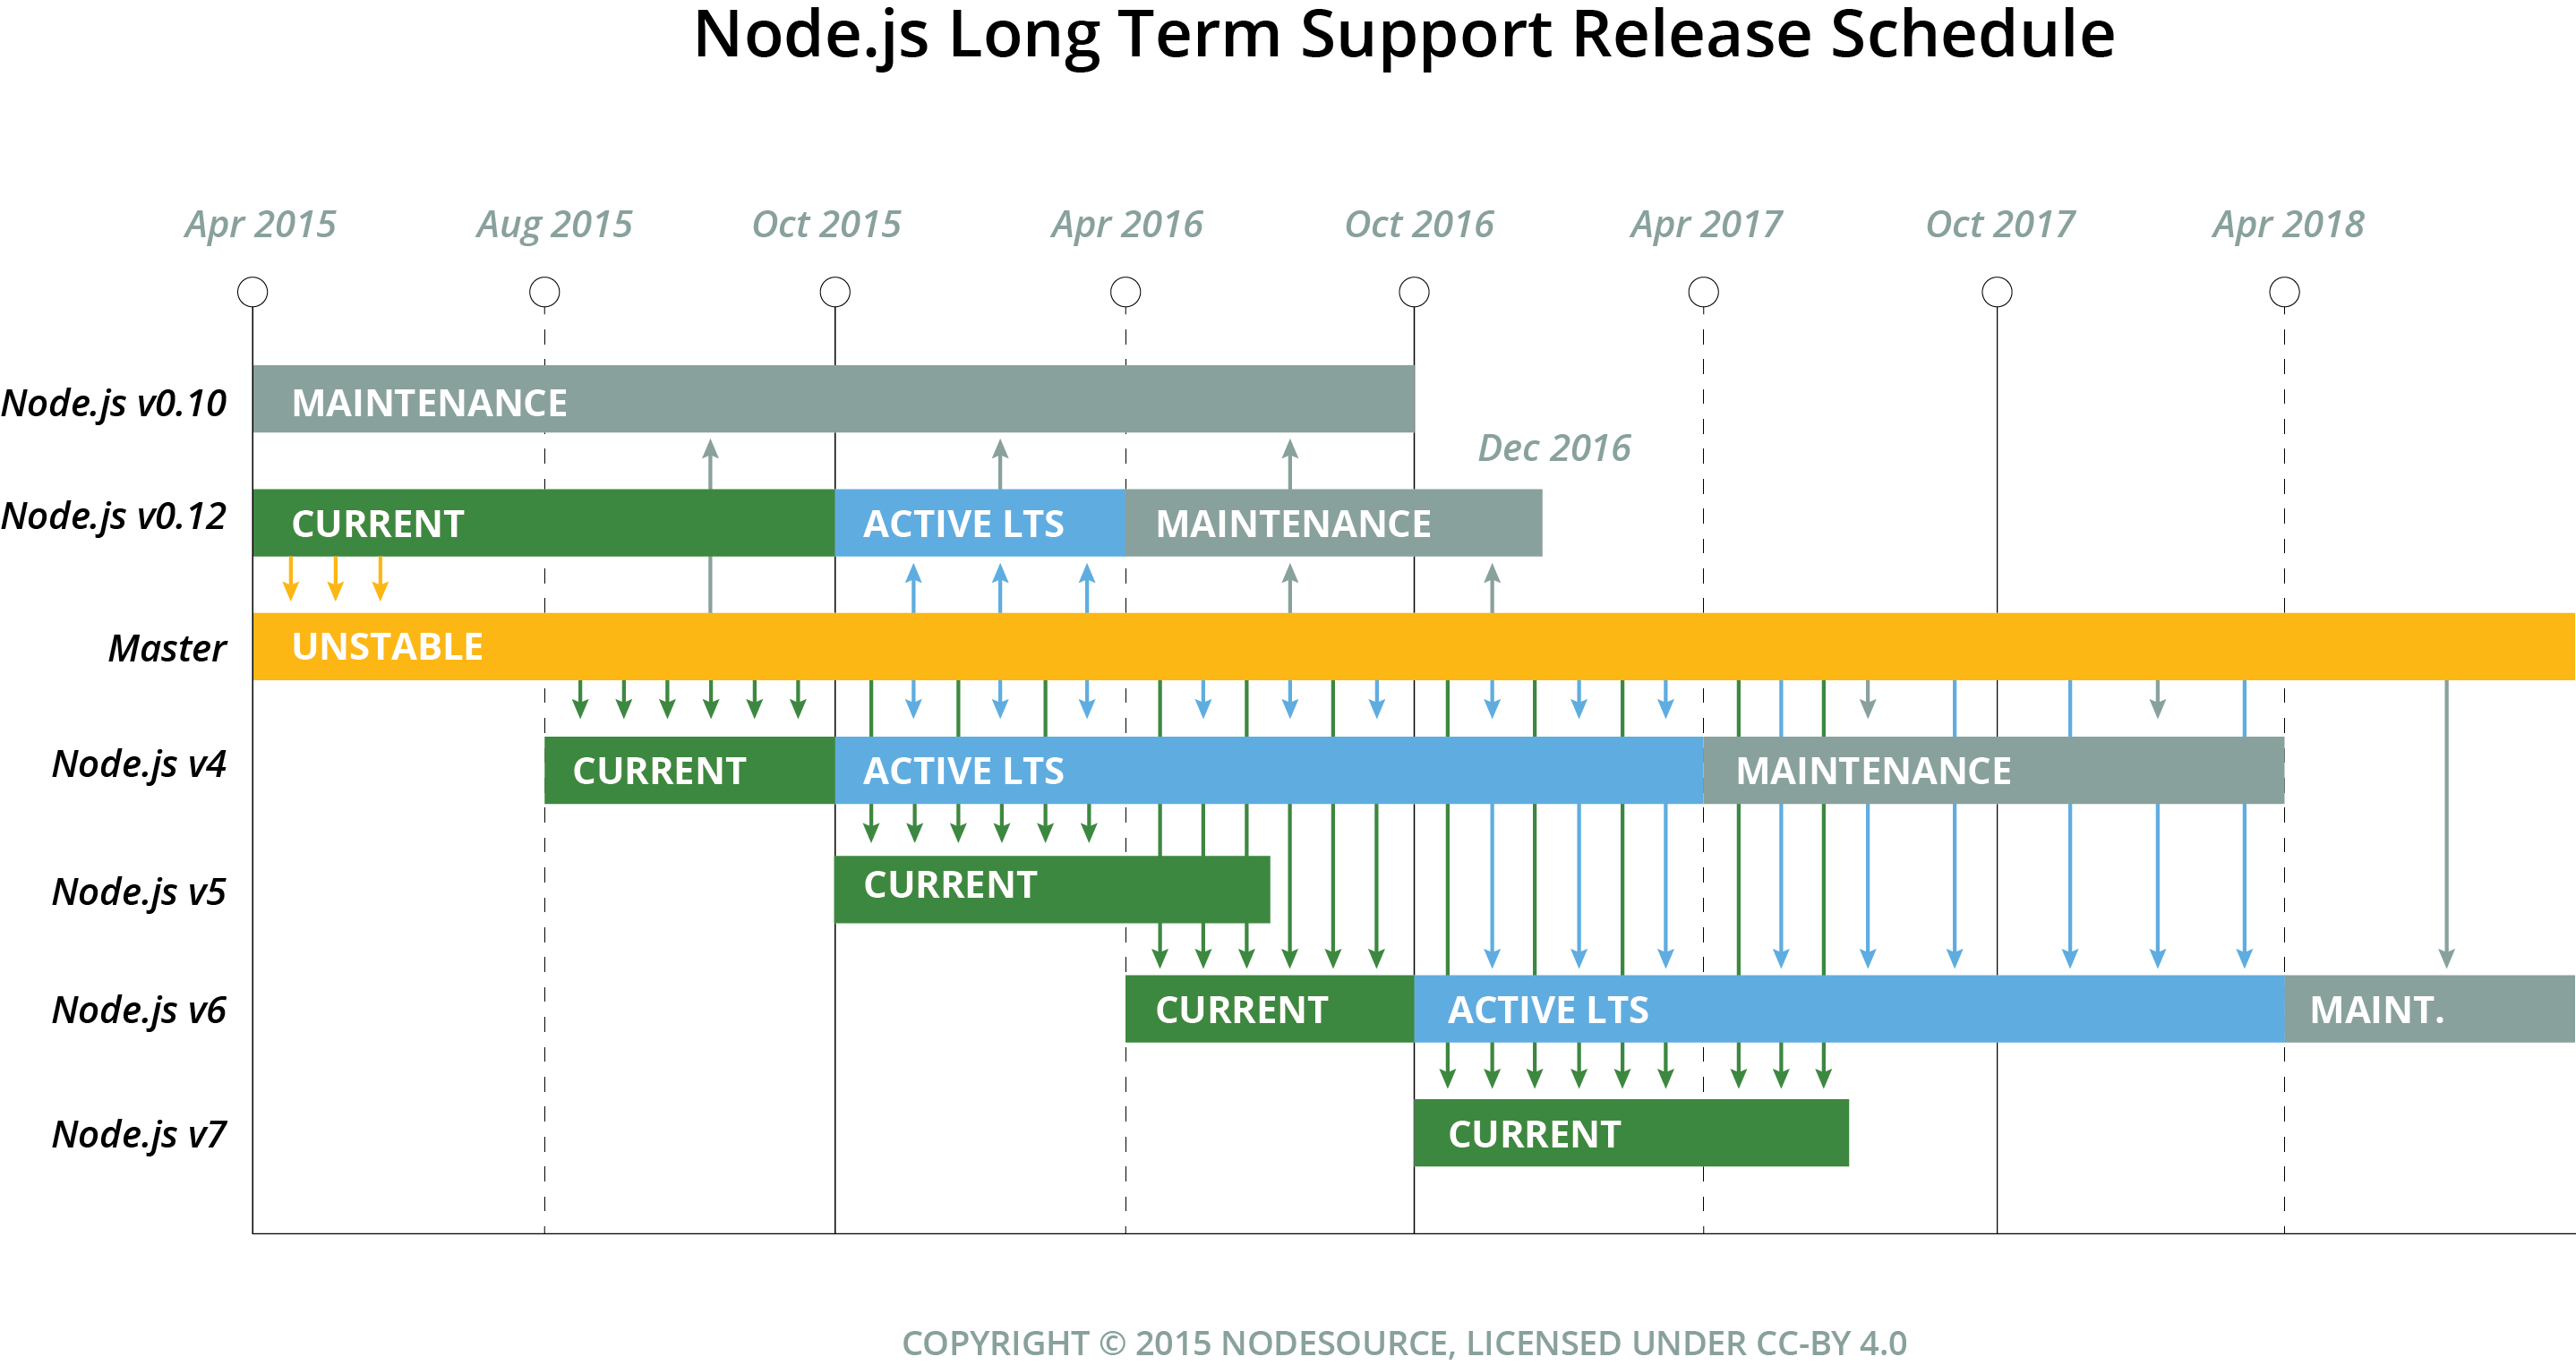 Overview of the Node.js release schedule showing releases every 6 months